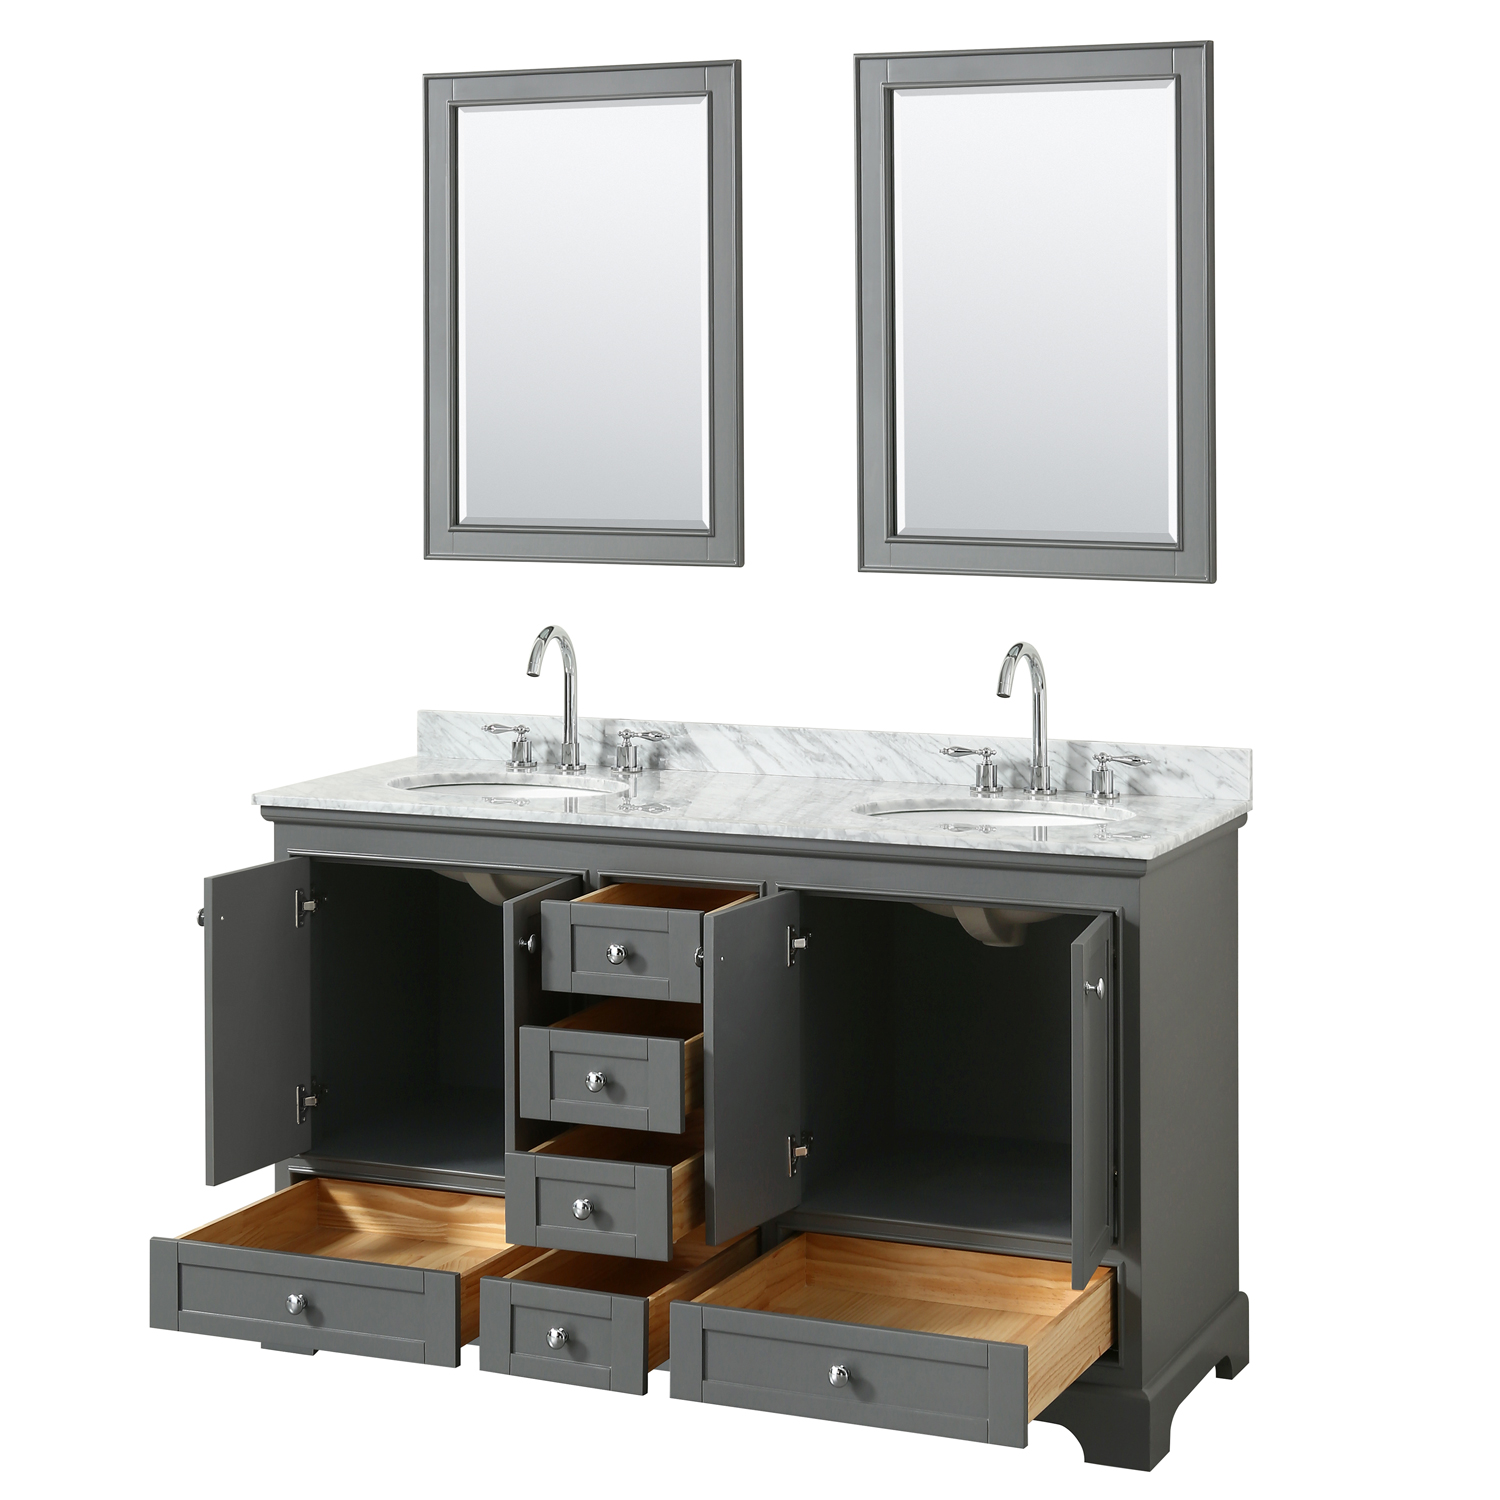 "Deborah 60"" Double Bathroom Vanity By Wyndham Collection"